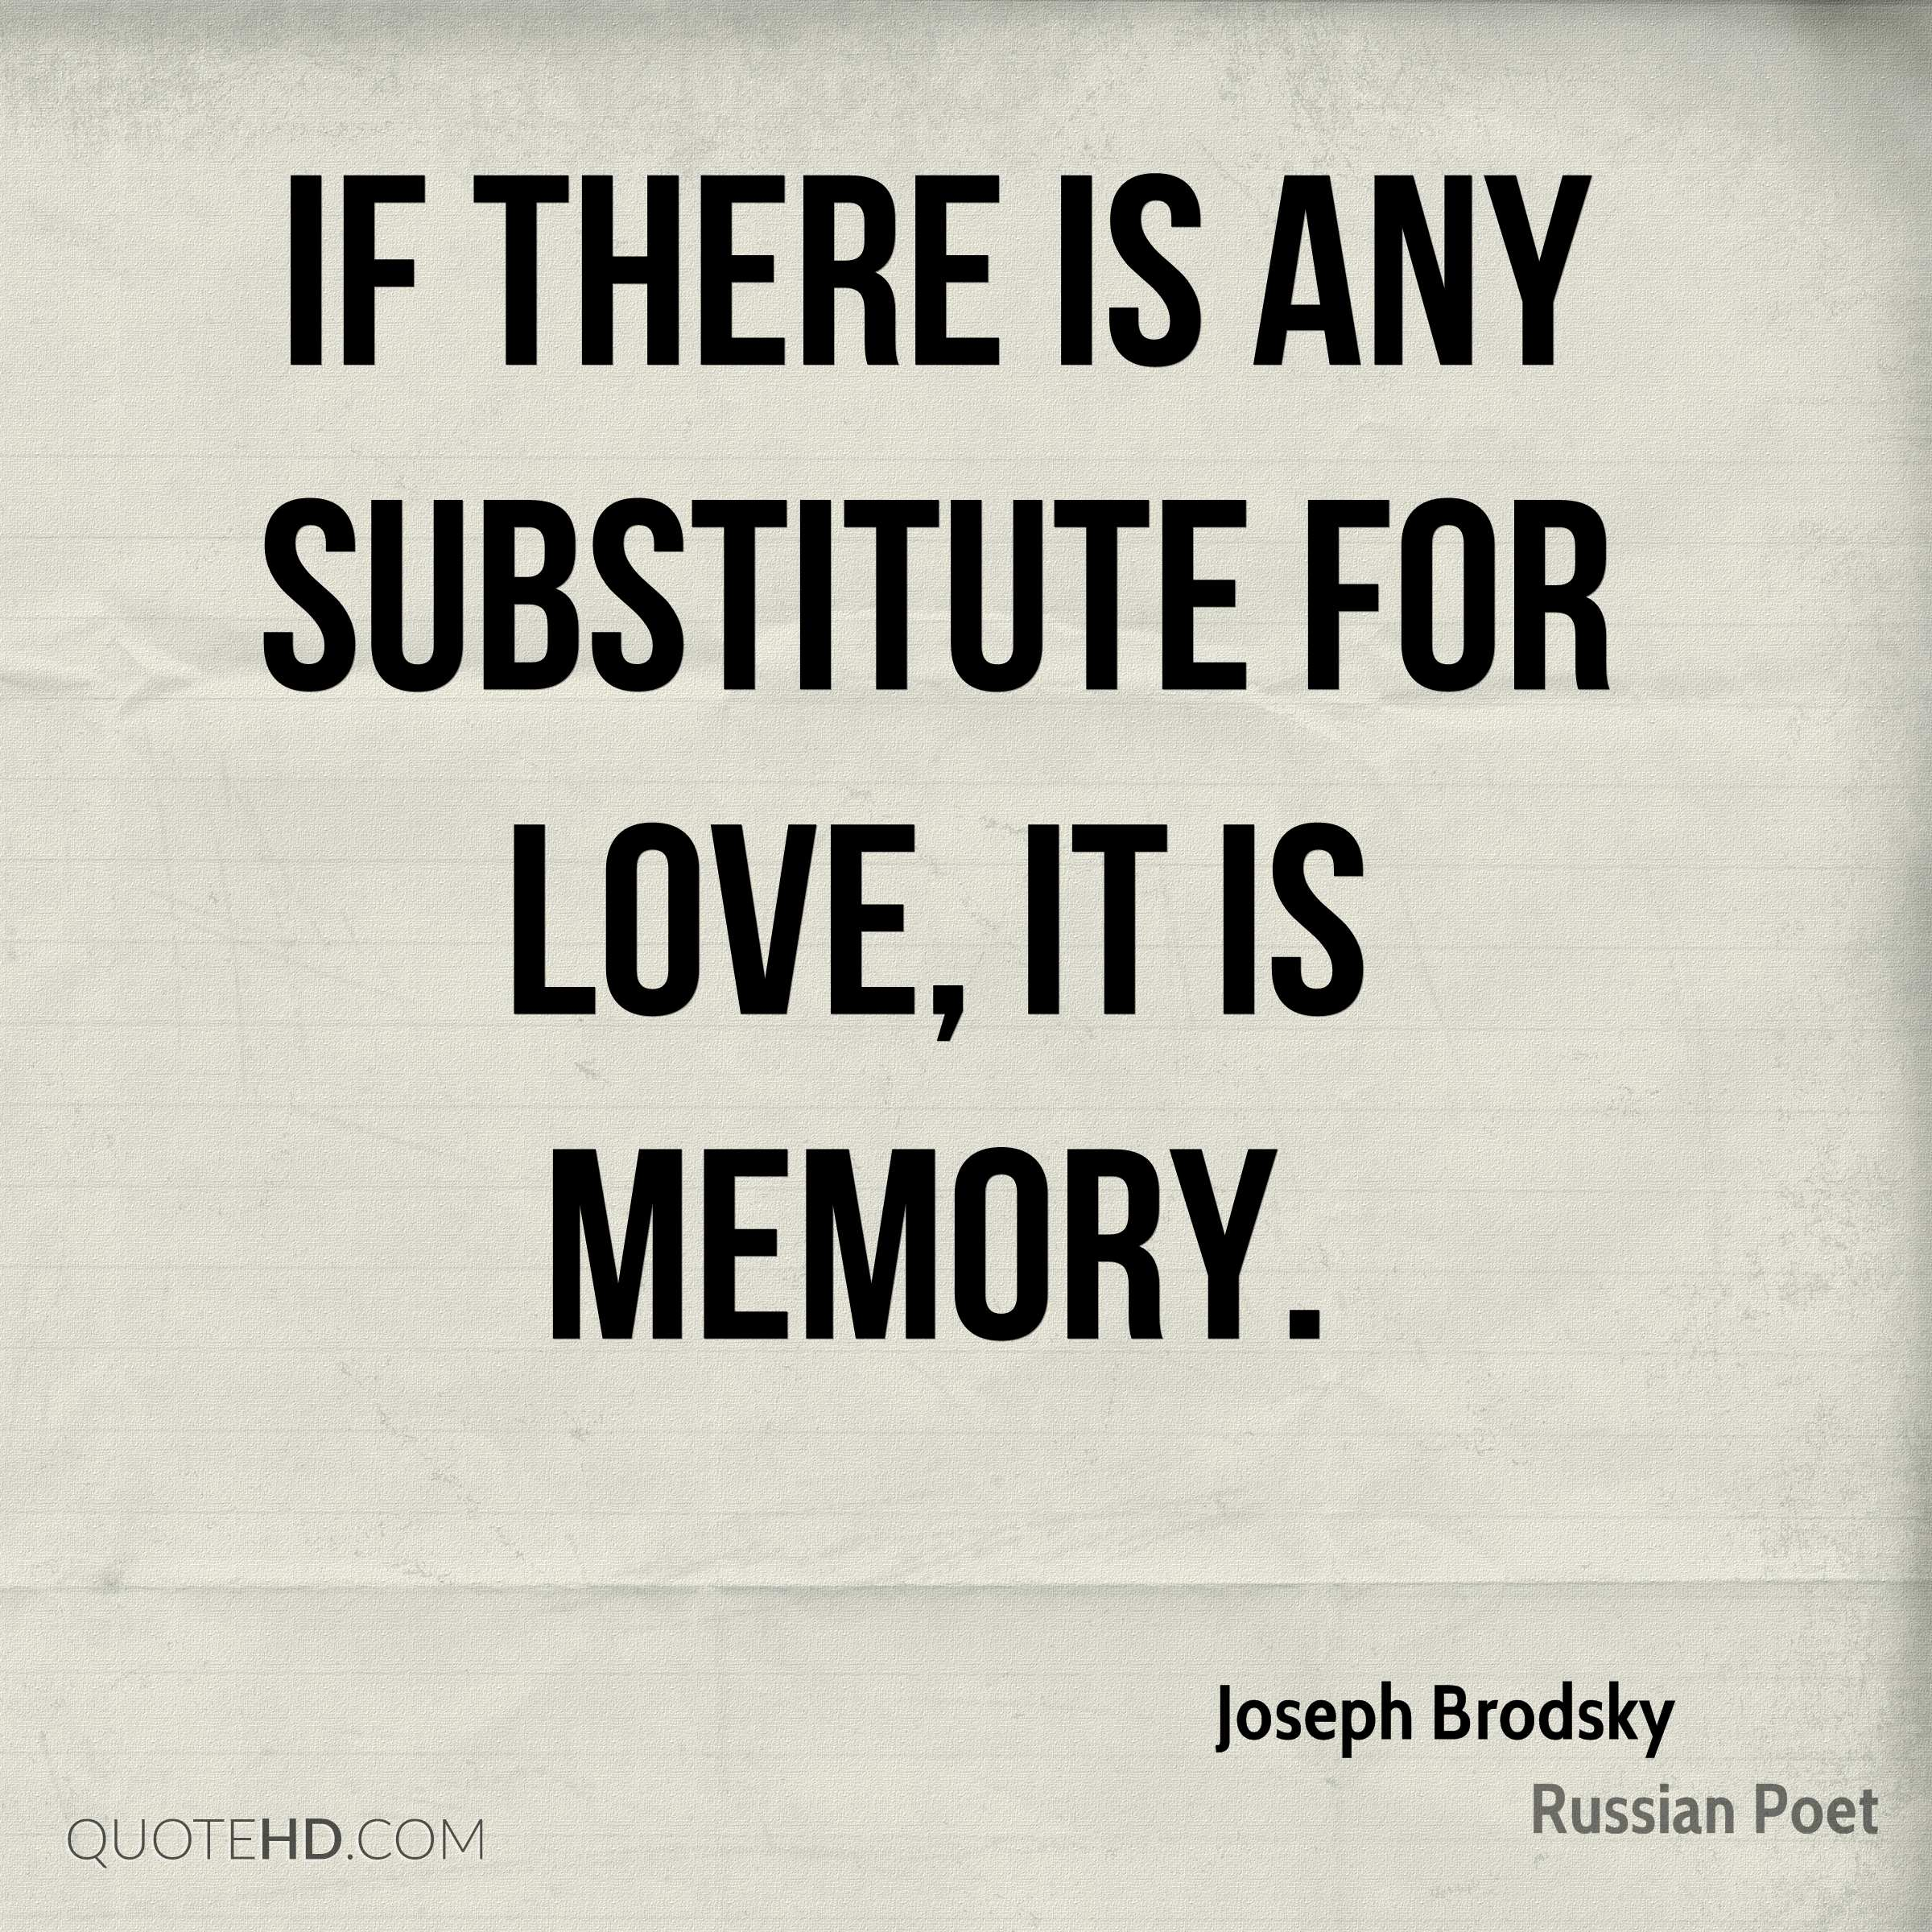 Russian Love Quotes Joseph Brodsky Quotes  Quotehd